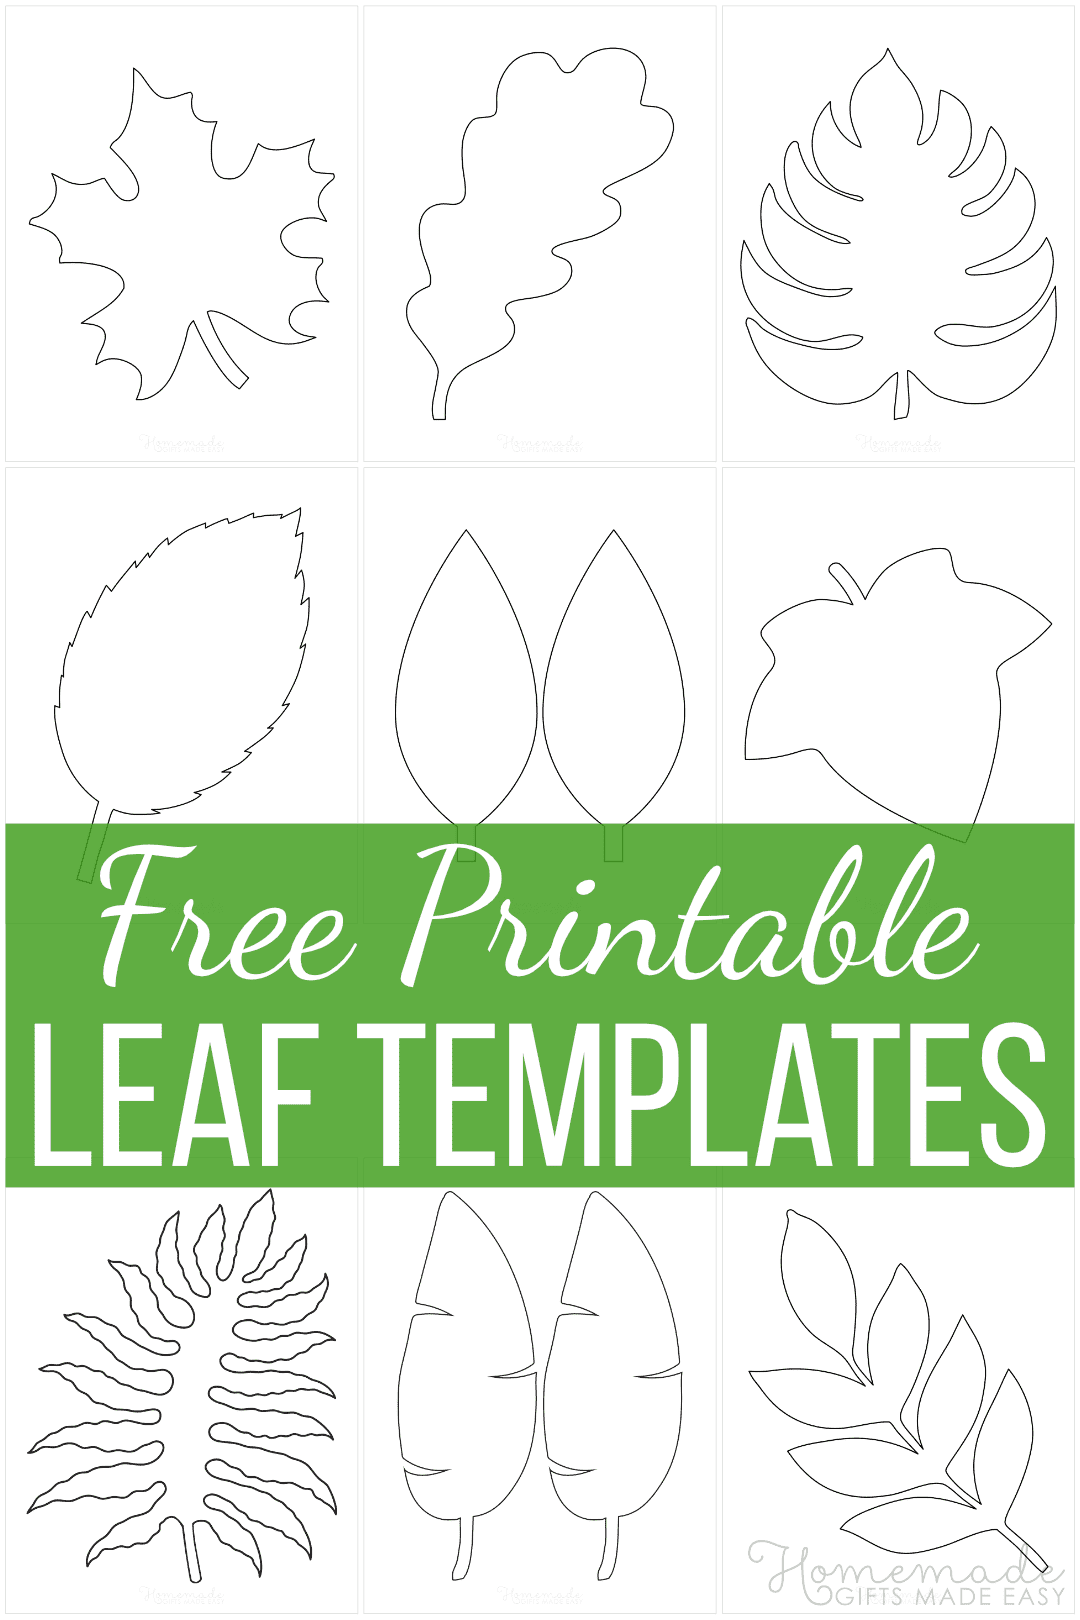 21 Free Leaf Templates - Printable Outlines of Maple, Oak etc for Kids  Crafts